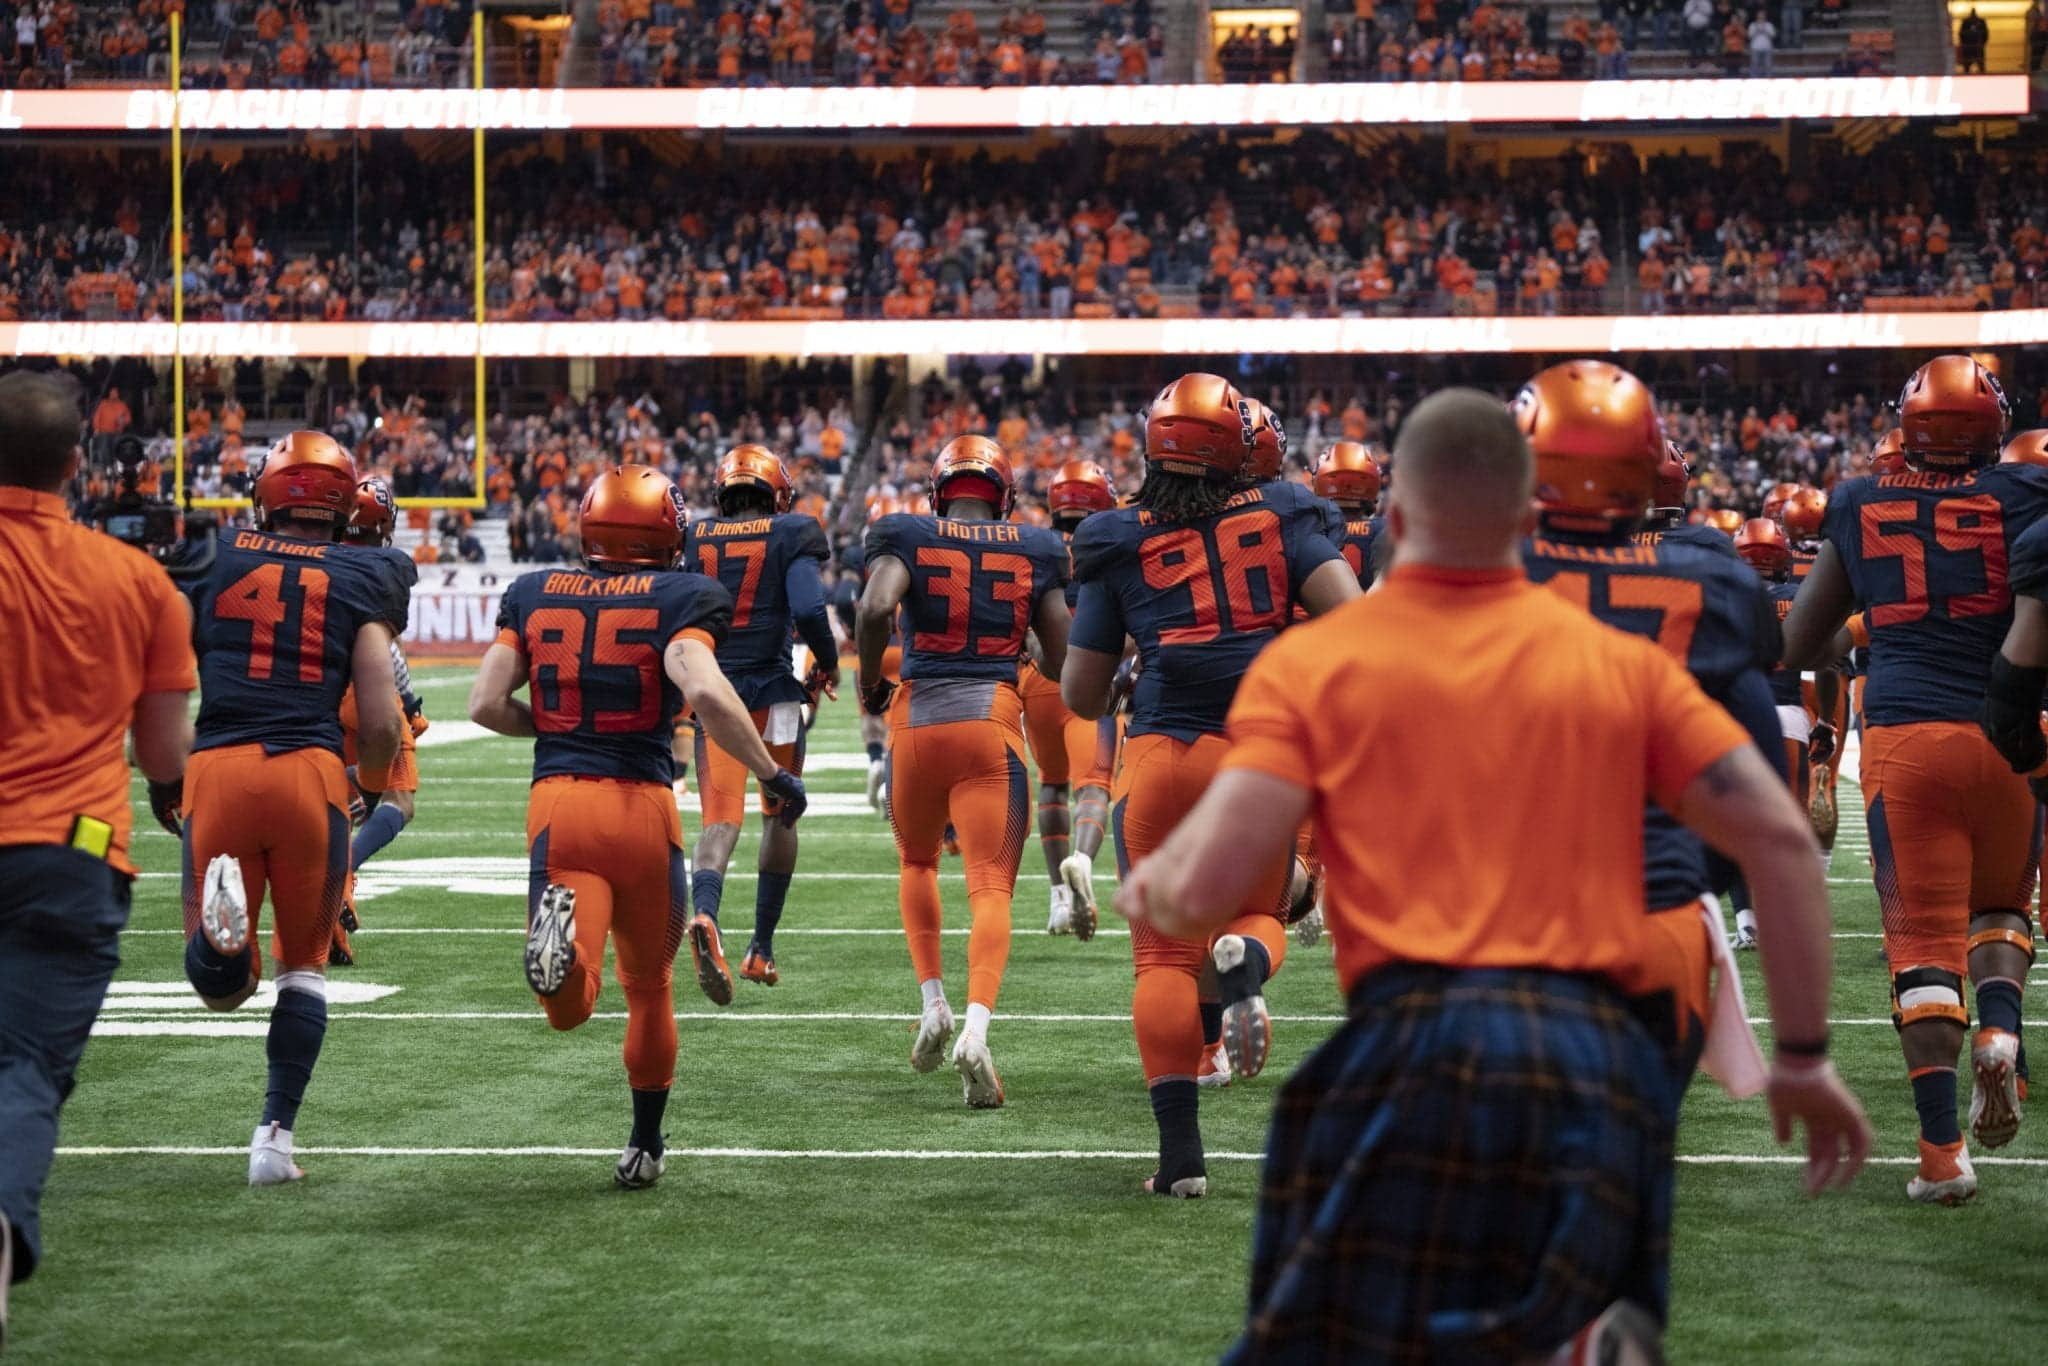 The Syracuse Orange football team runs onto field